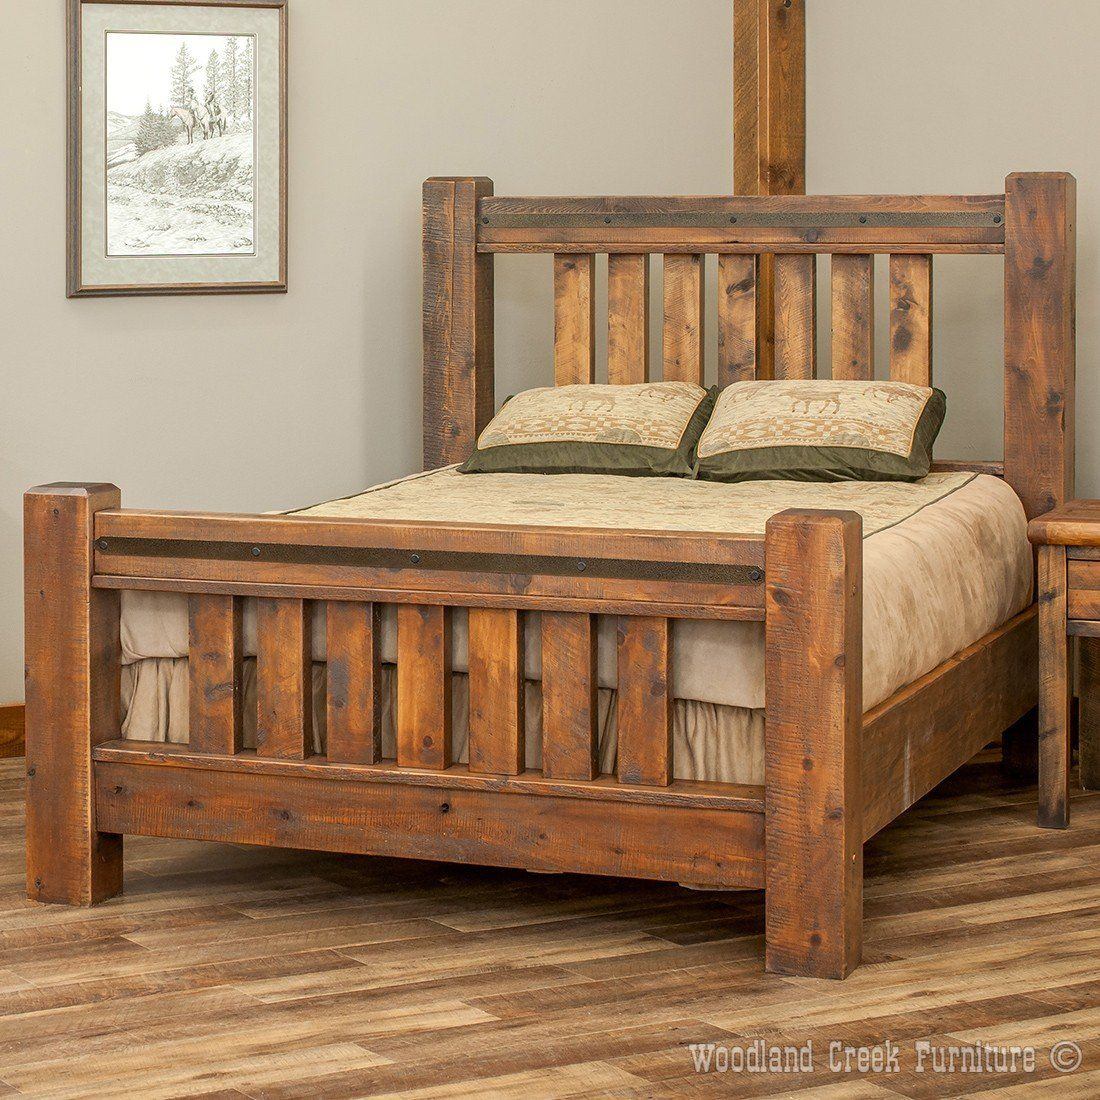 Sawmill Spindle Rough Sawn Timber Bed Rustic Bed Frame Timber